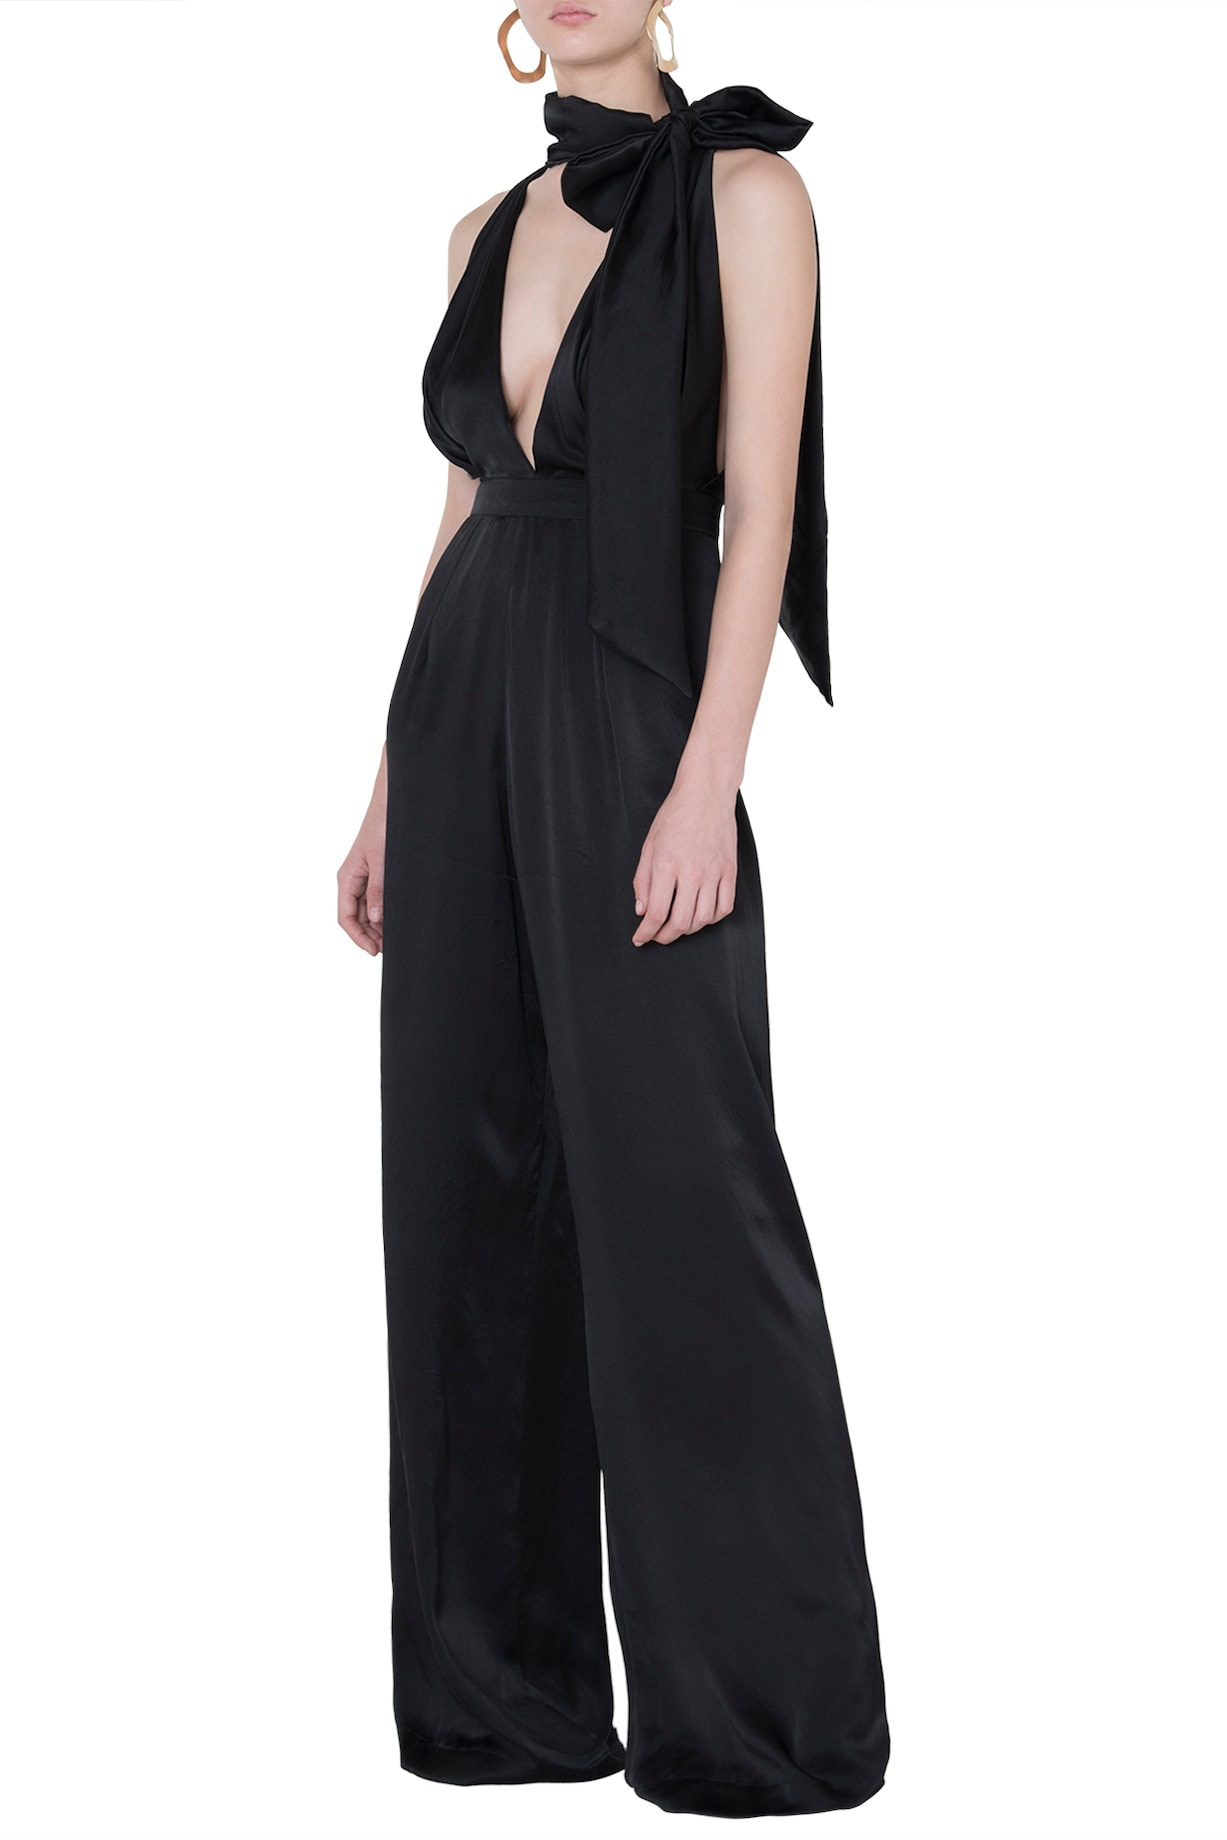 6e5b66a6988d Black satin jumpsuit available only at Pernia s Pop Up Shop.